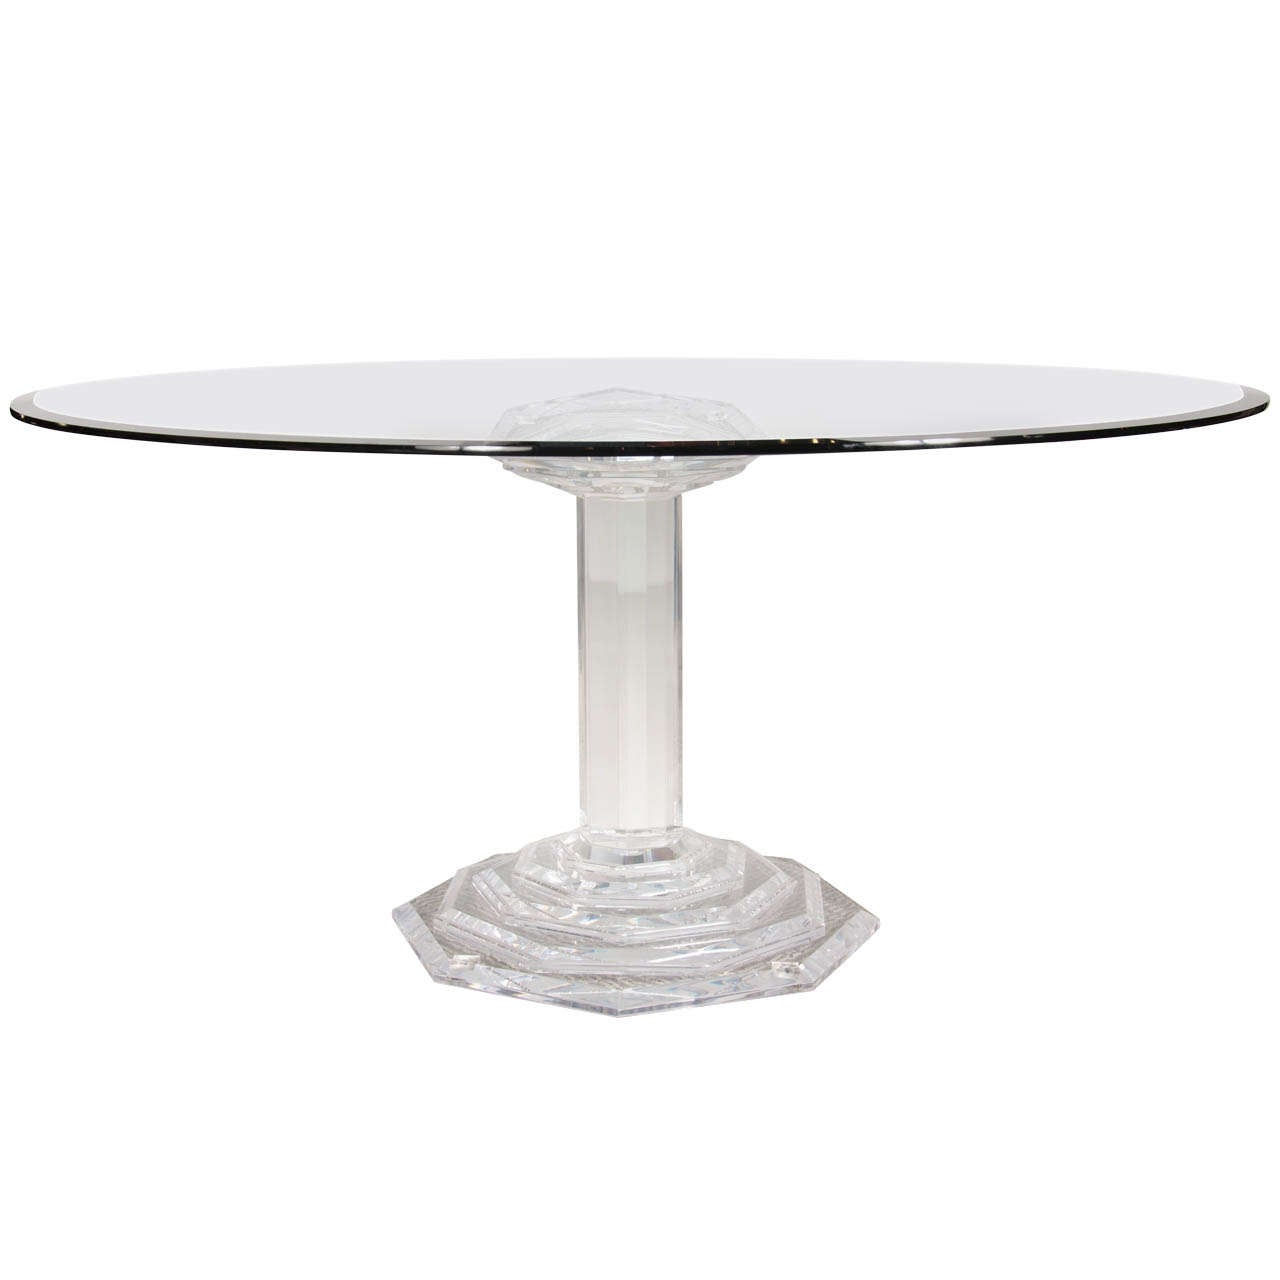 Lucite Dining Room Table: Mid CenturyModernist Lucite And Glass Round Dining Table